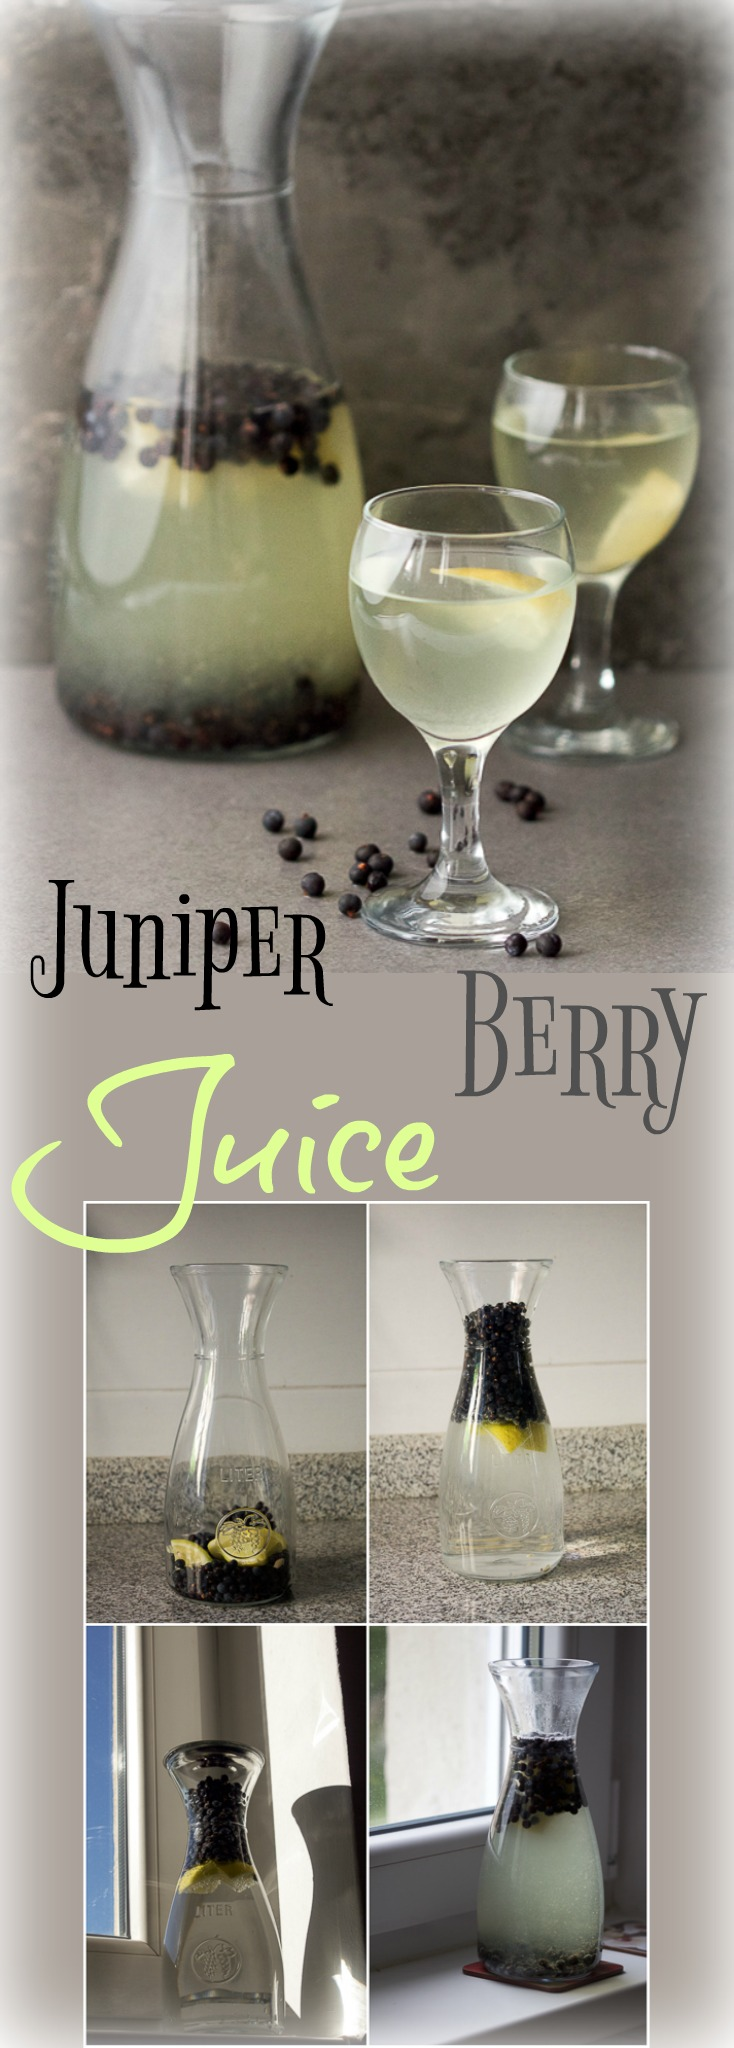 Fermented Juniper Berry Juice (aka smreka), is a sour and refreshing, lemonade-like beverage, perfect for quenching the thirst on a warm evening.